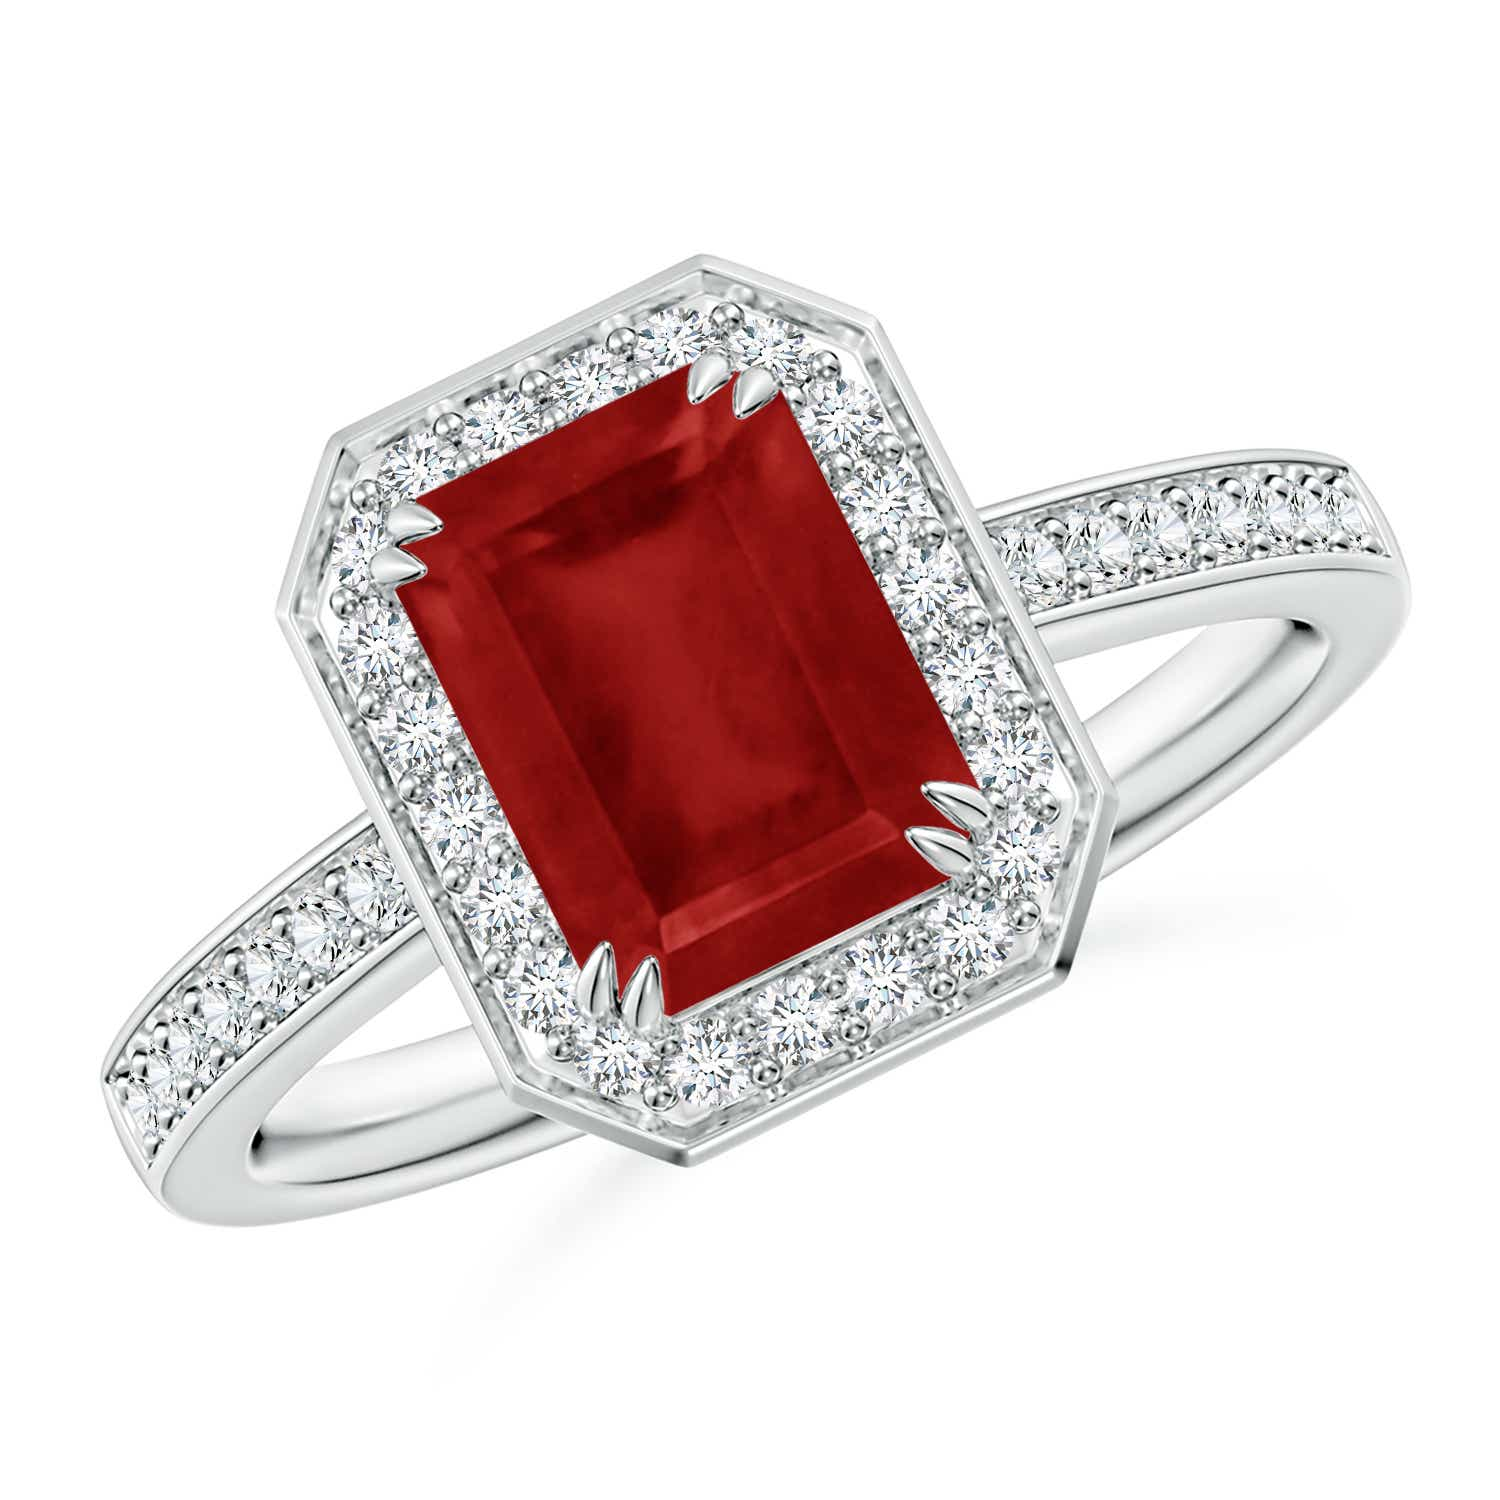 Emerald Cut Ruby Engagement Ring With Diamond Halo Angara Uk